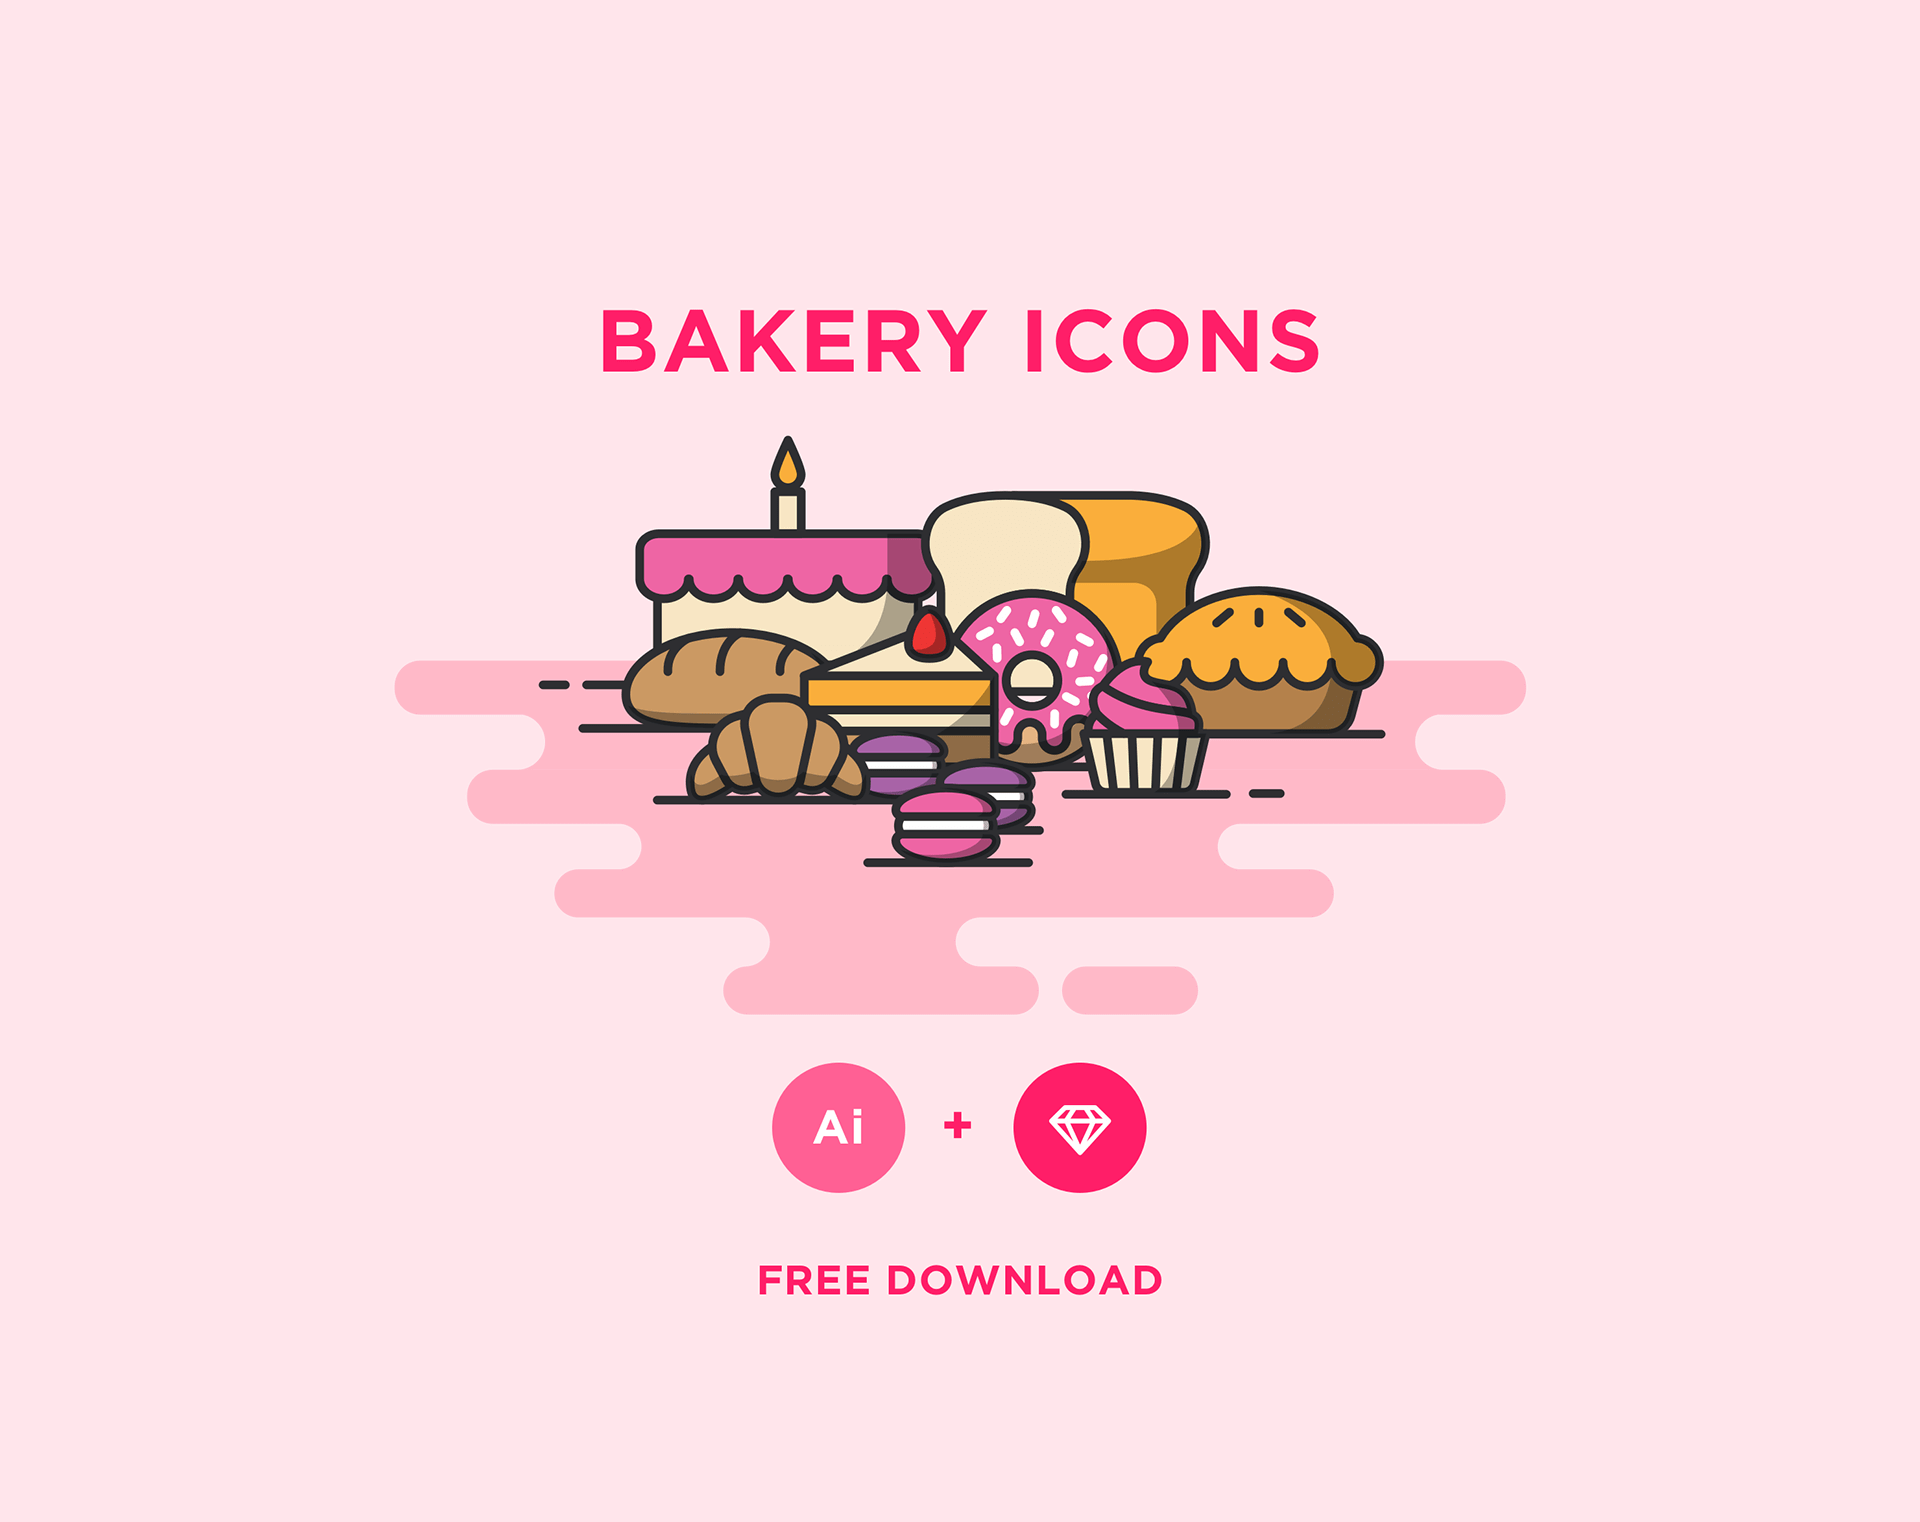 bakery-icons